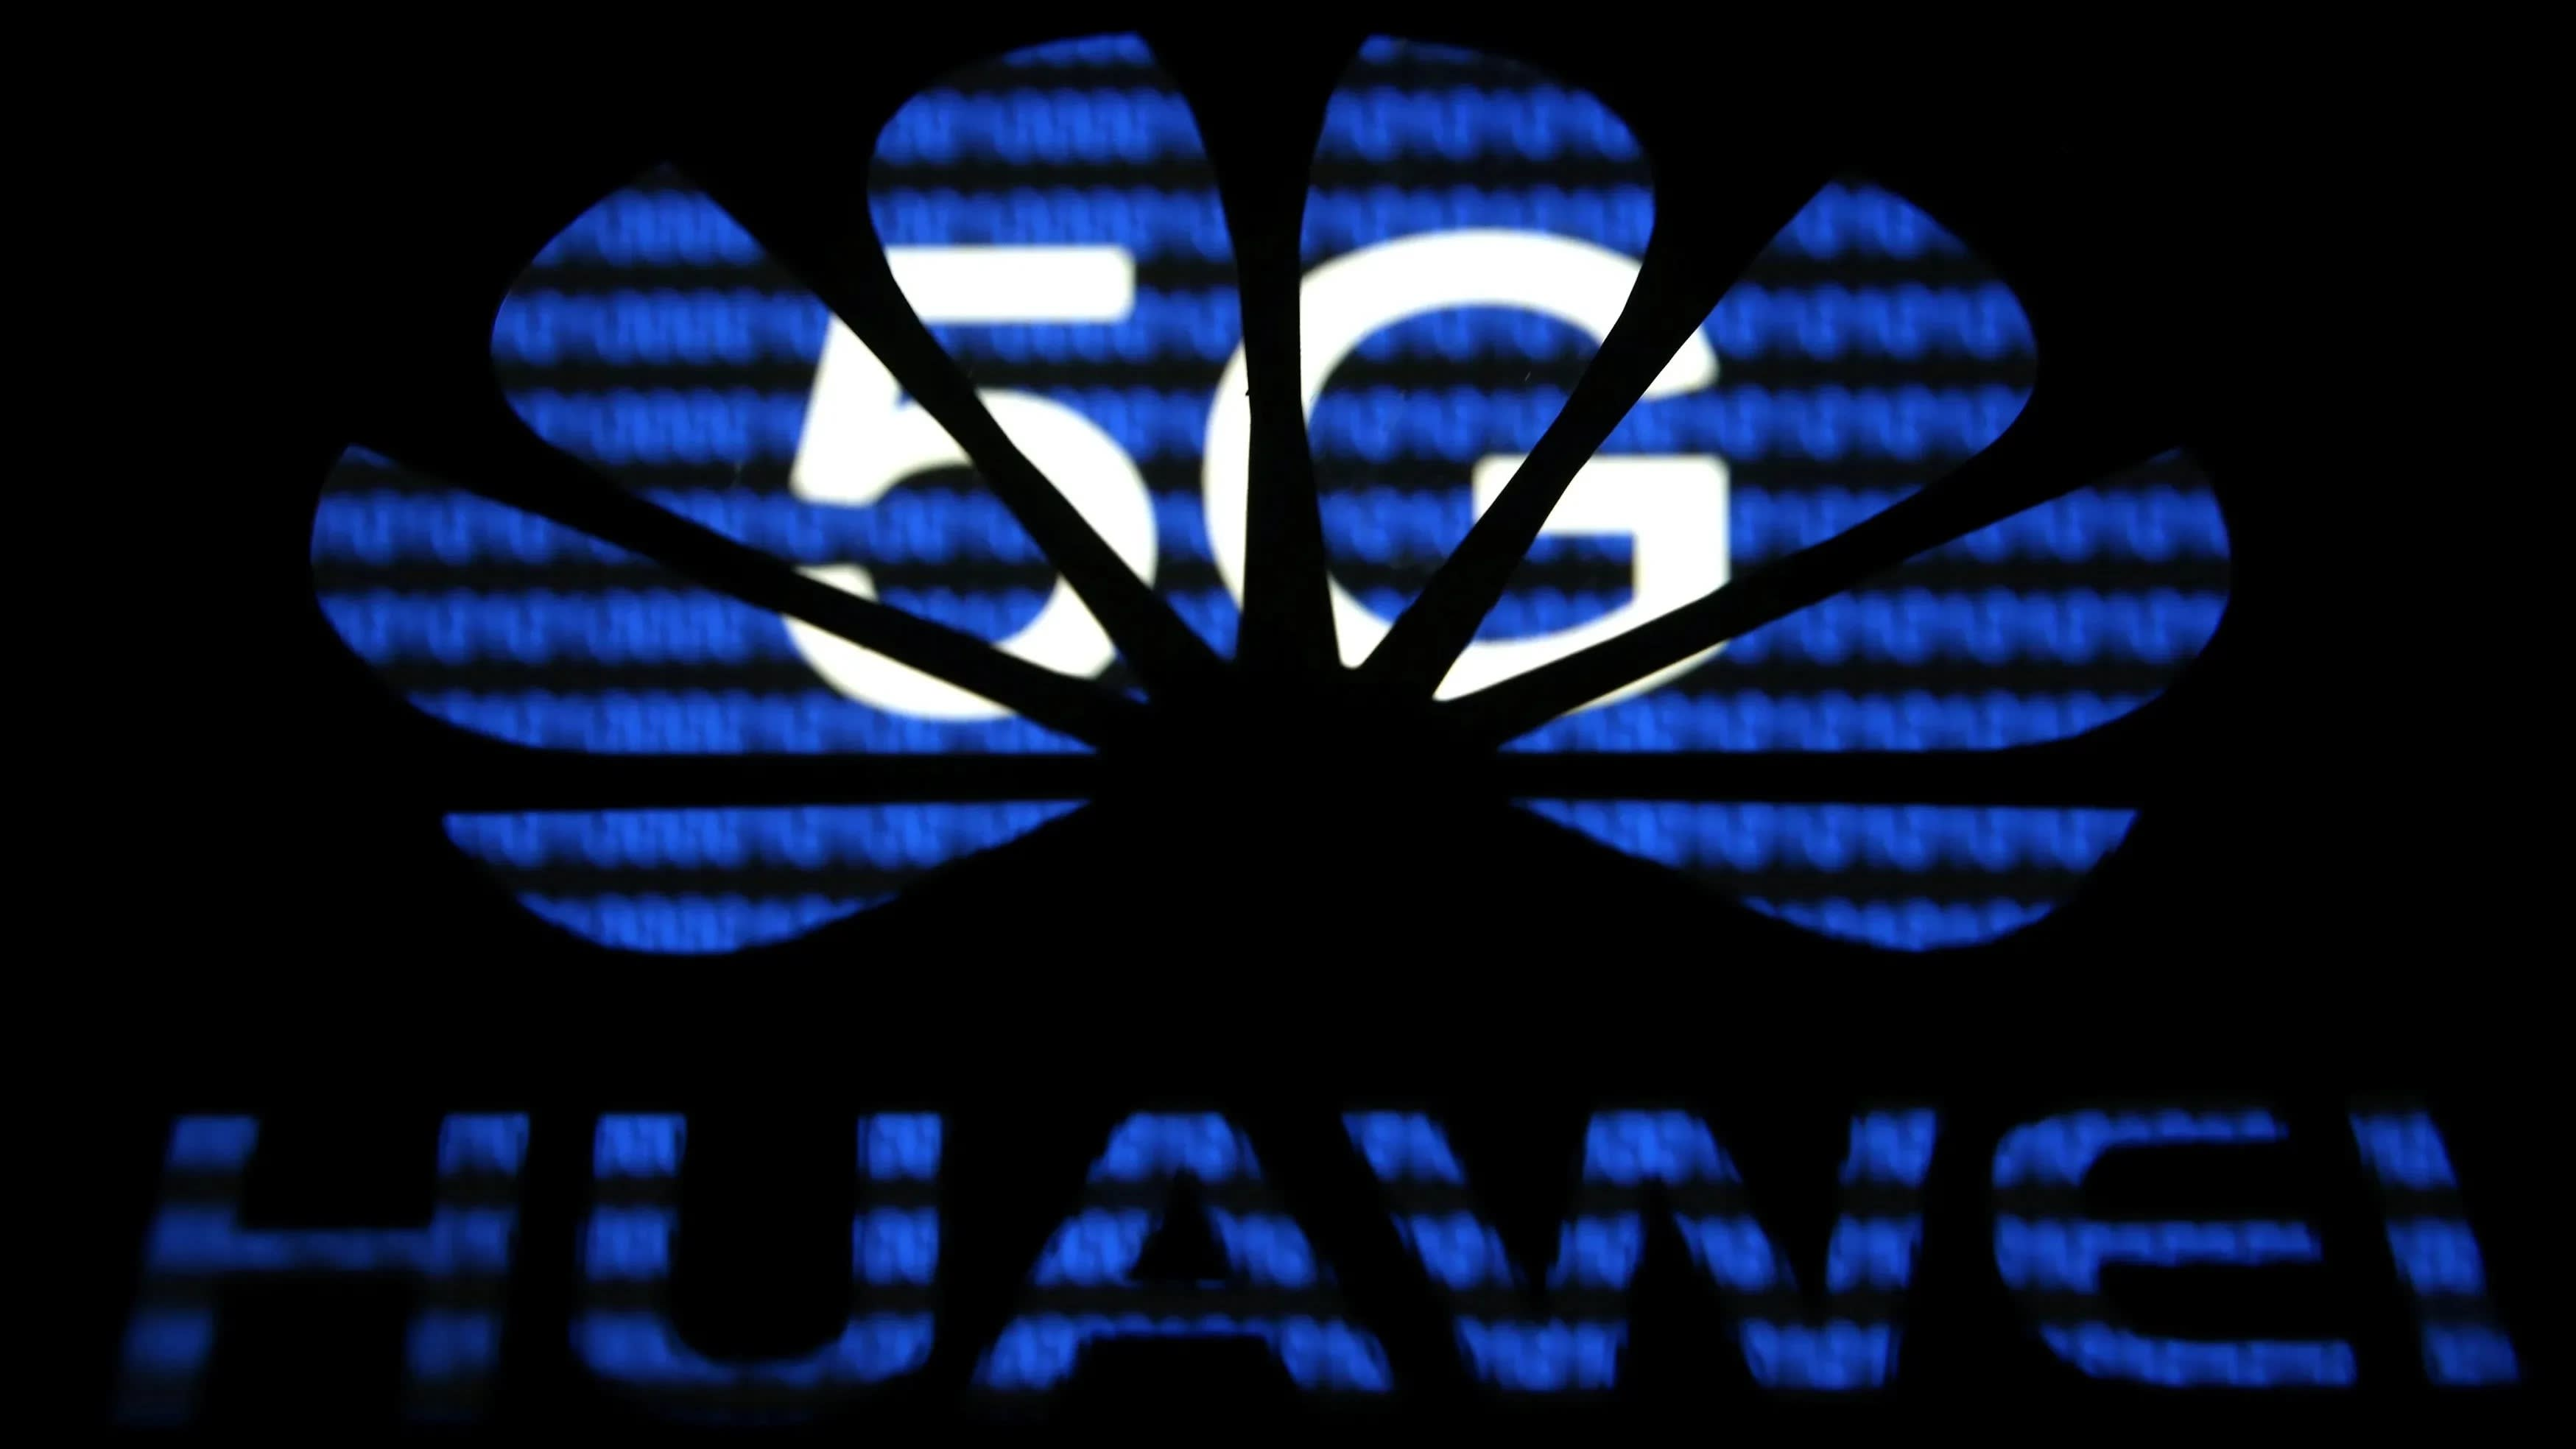 Huawei aims to bring out 5G TV this year, become top PC producer